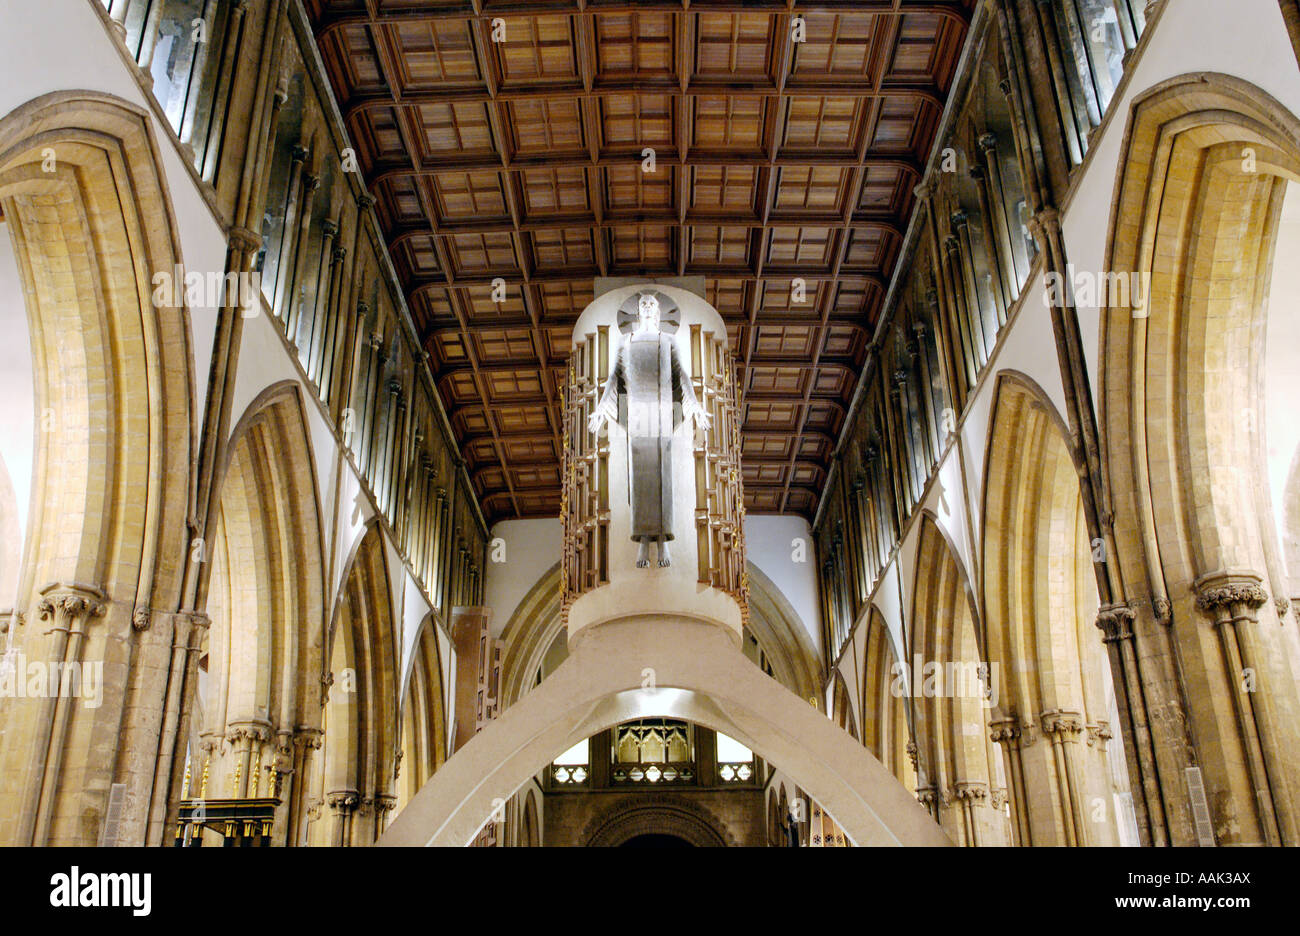 Llandaff Cathedral Cardiff South Wales Uk Interior Architectural Stock Photo Royalty Free Image